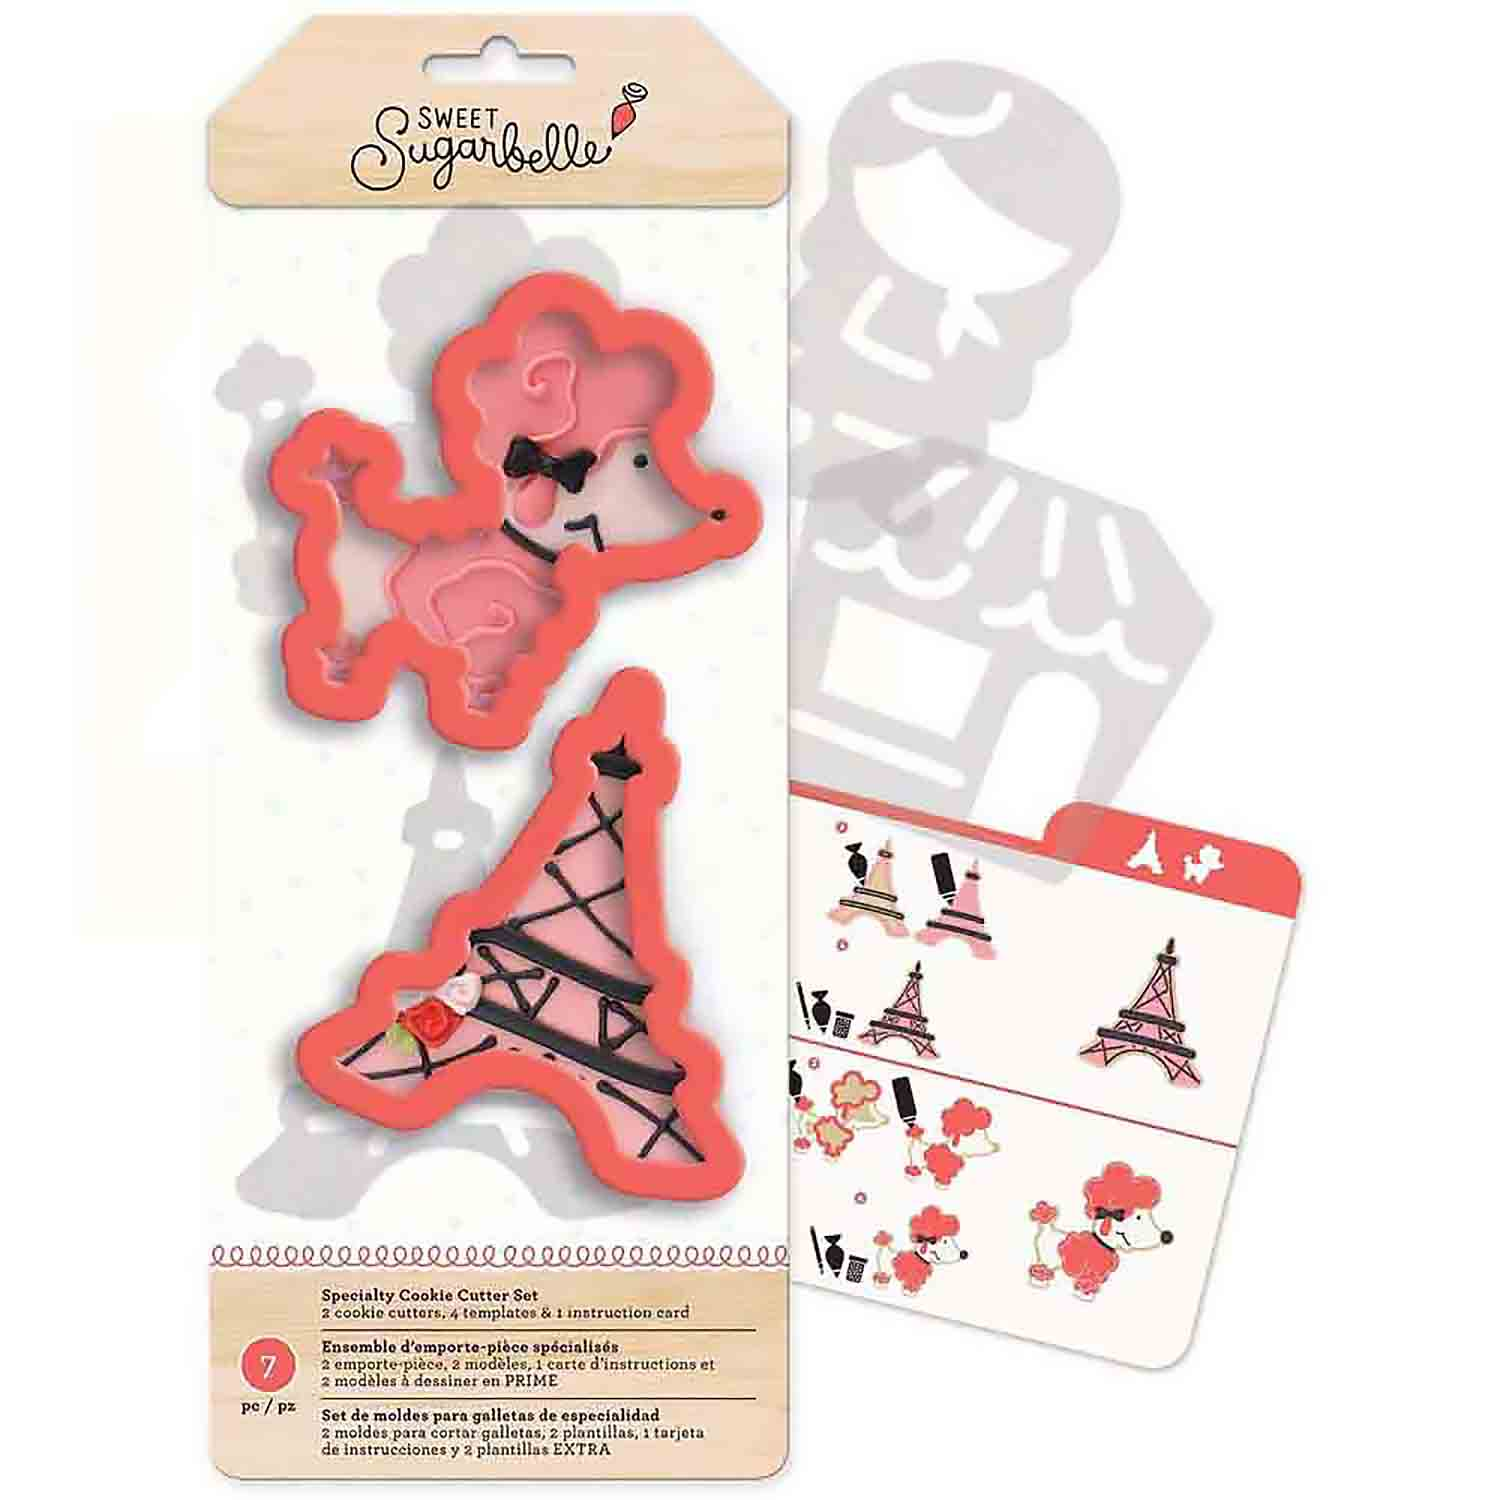 Ooh La La Cookie Cutter Stencil Set by Sweet Sugarbelle